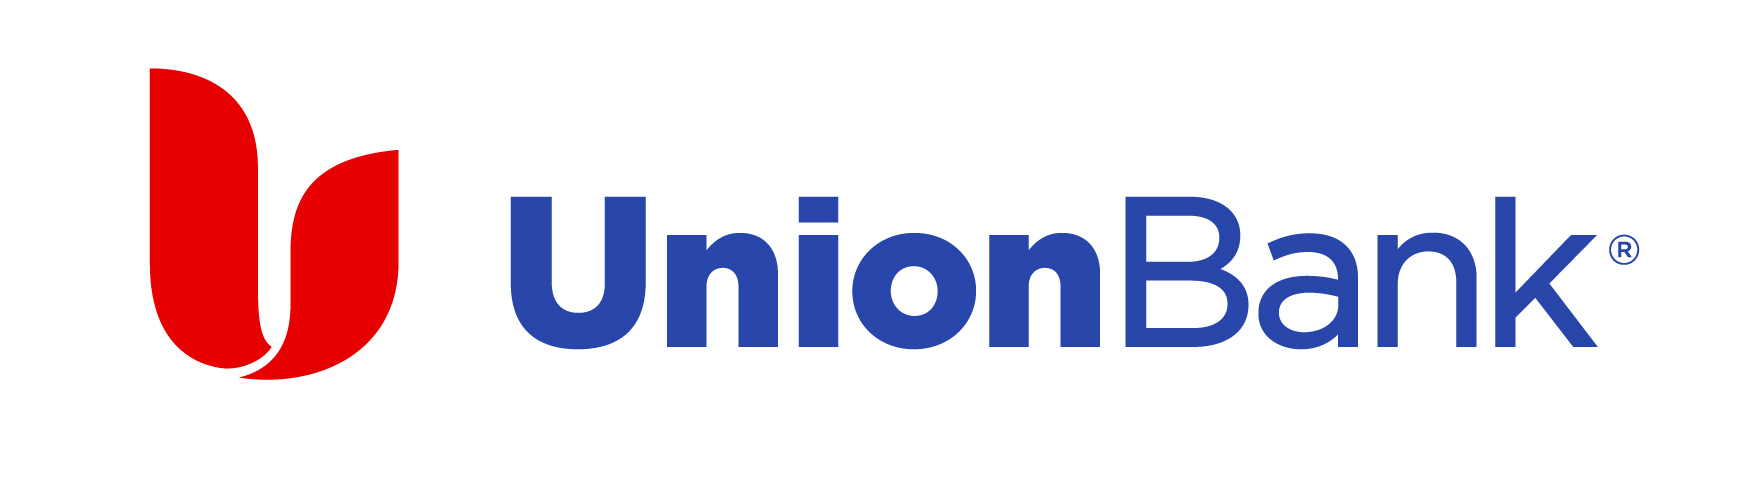 Union Bank - Presenting Sponsor of the Taste of Carmel